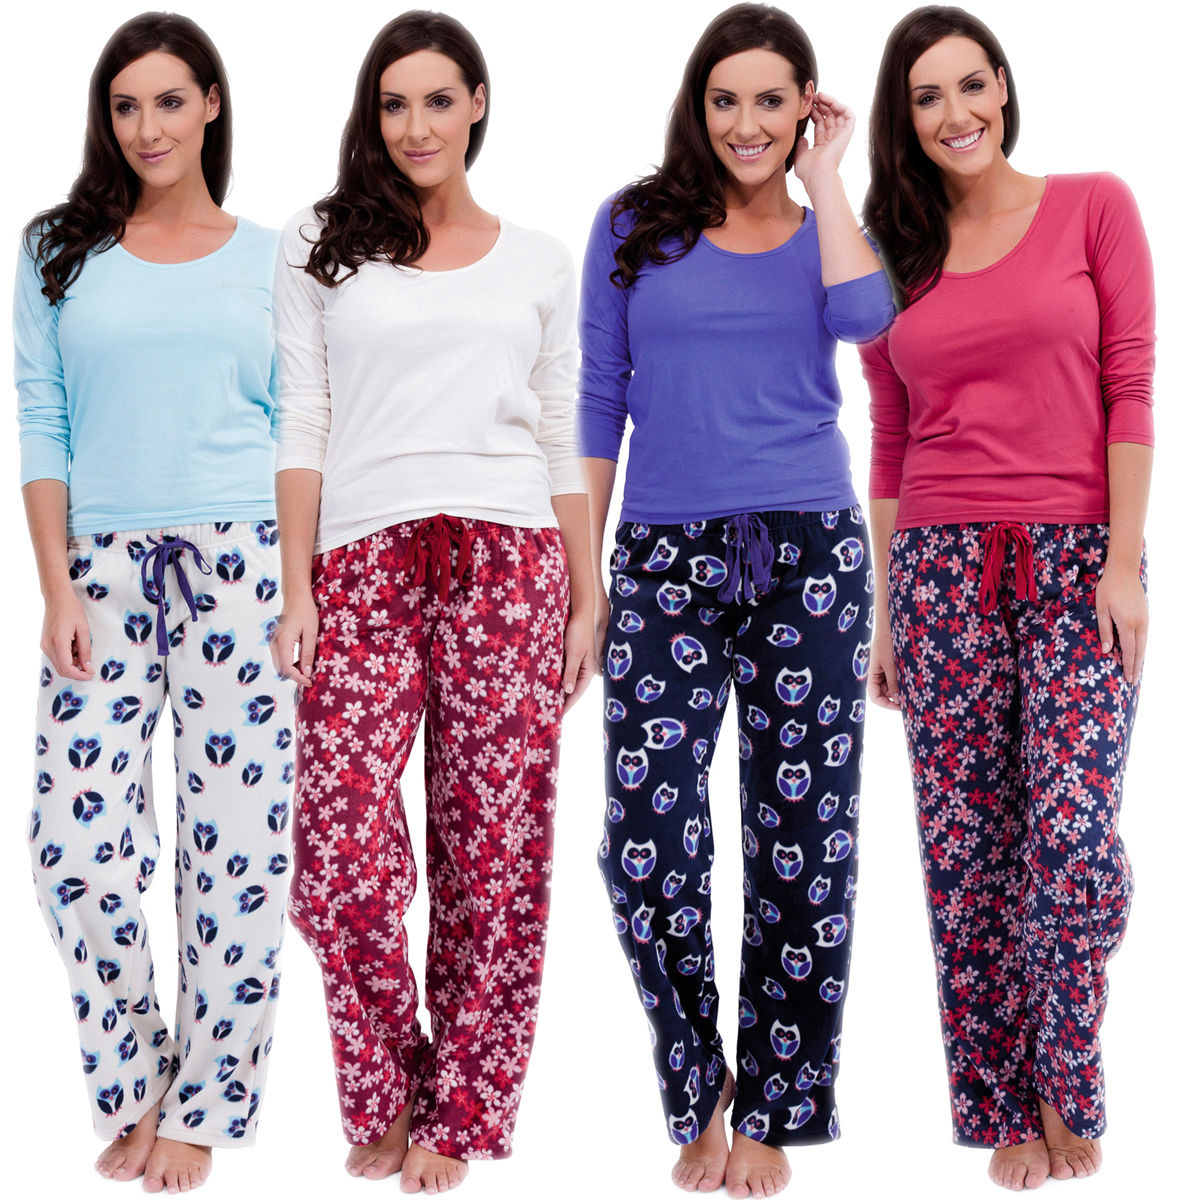 Womens Warm Fleece Winter PJ Pyjama Set Night Wear PJ s Pyjamas Sets Ladies 5500c00cc